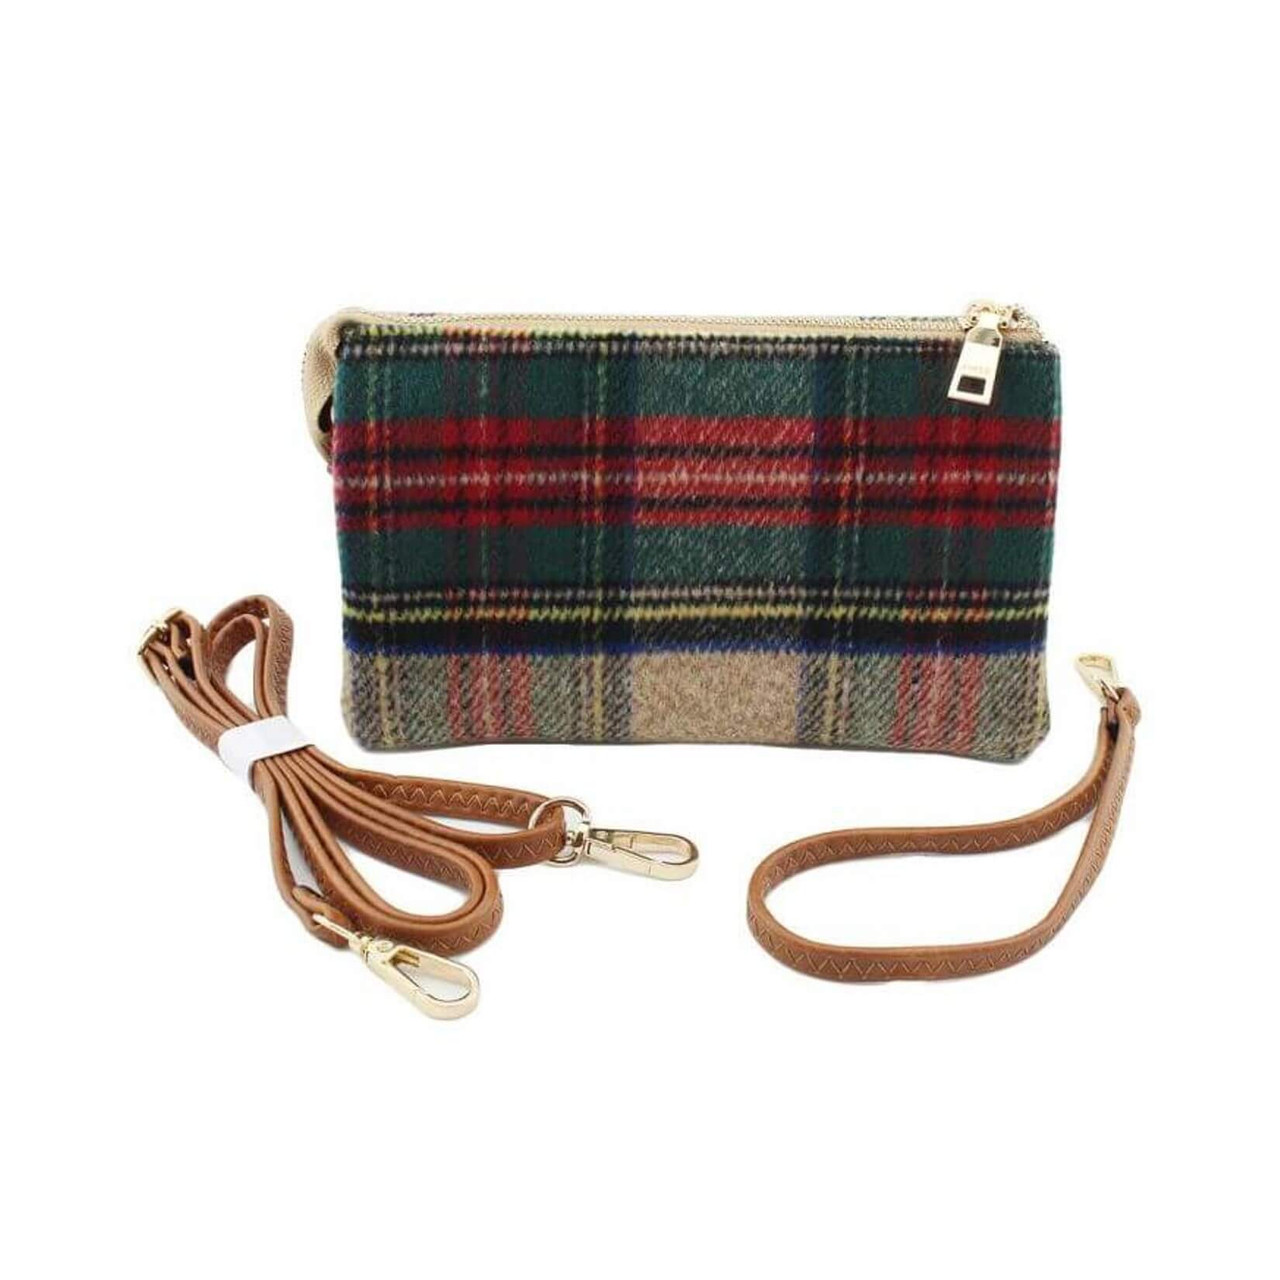 Riley plaid multi wristlet and adjustable crossbody strap included. Three separate interior compartments with six credit card slots. Top zipper closure.